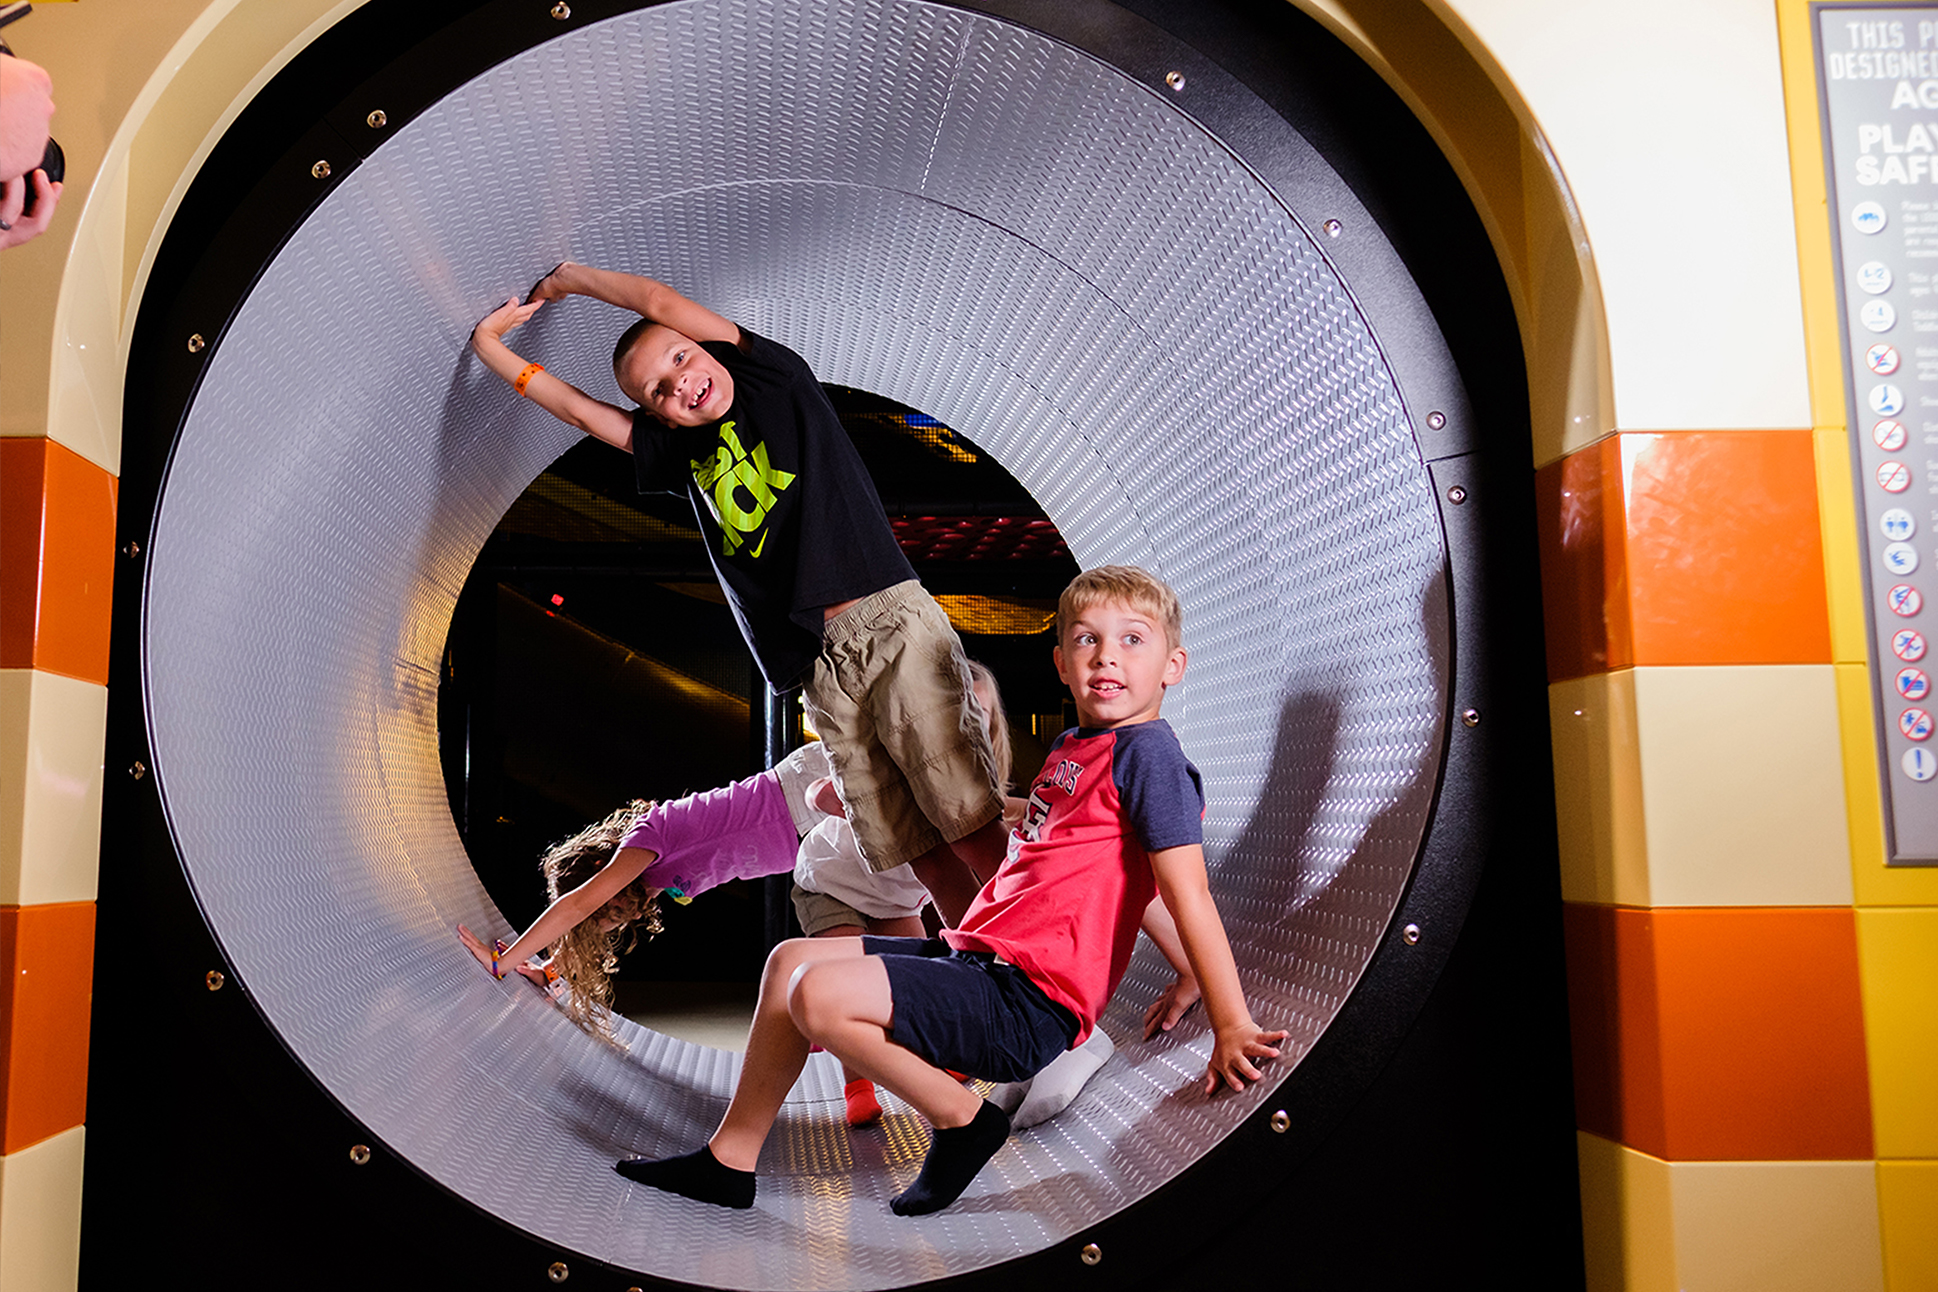 Children climbing in tunnel Legoland